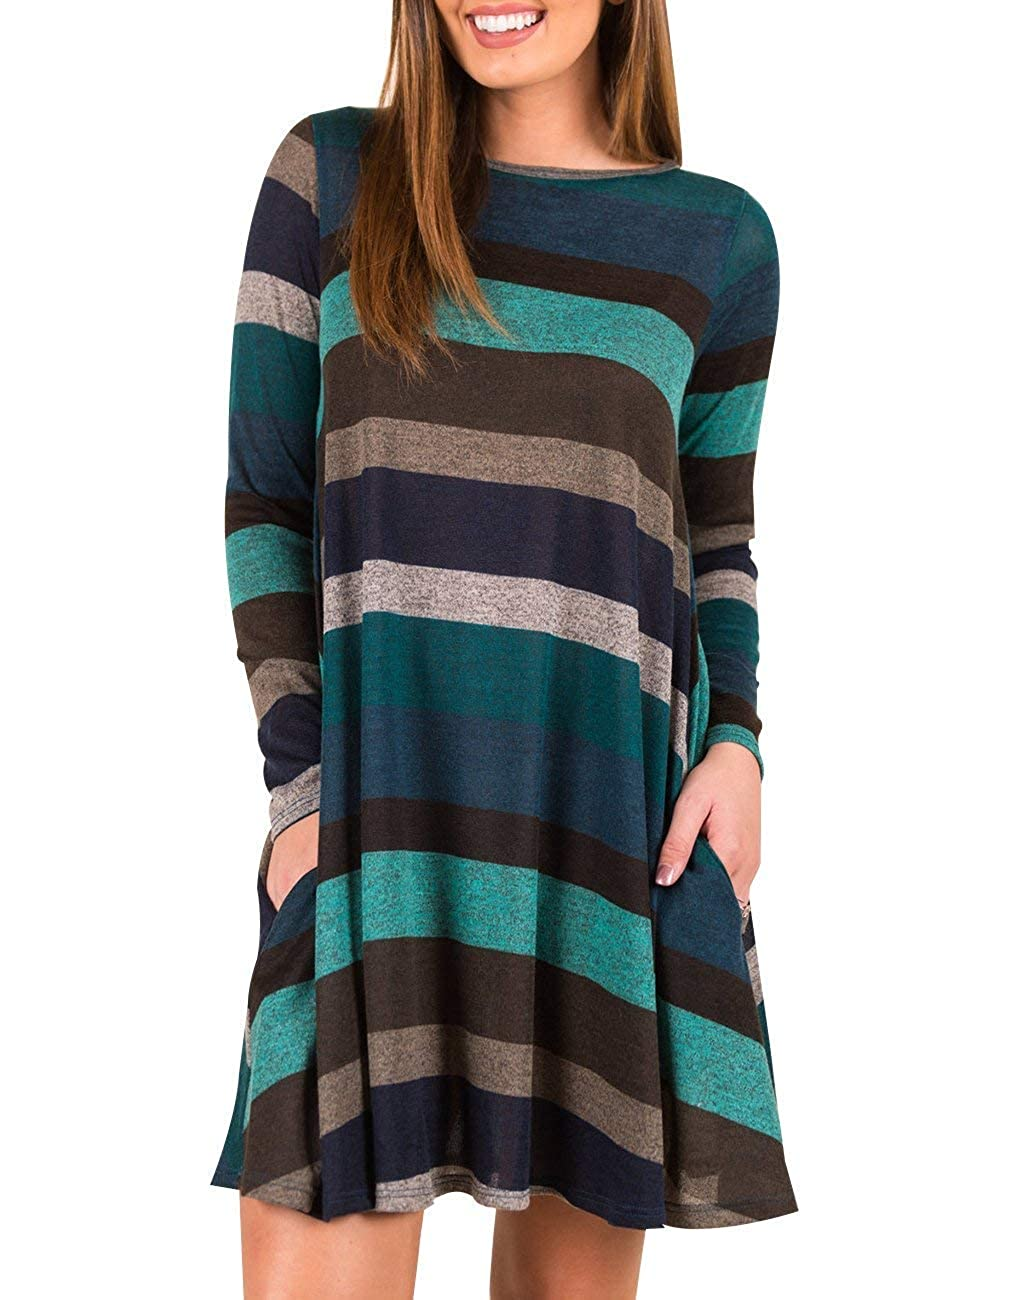 bluee BELLEZIVA Women Striped Tunic Dress for Leggings Casual Long Sleeve Swing Top Shirt with Pockets